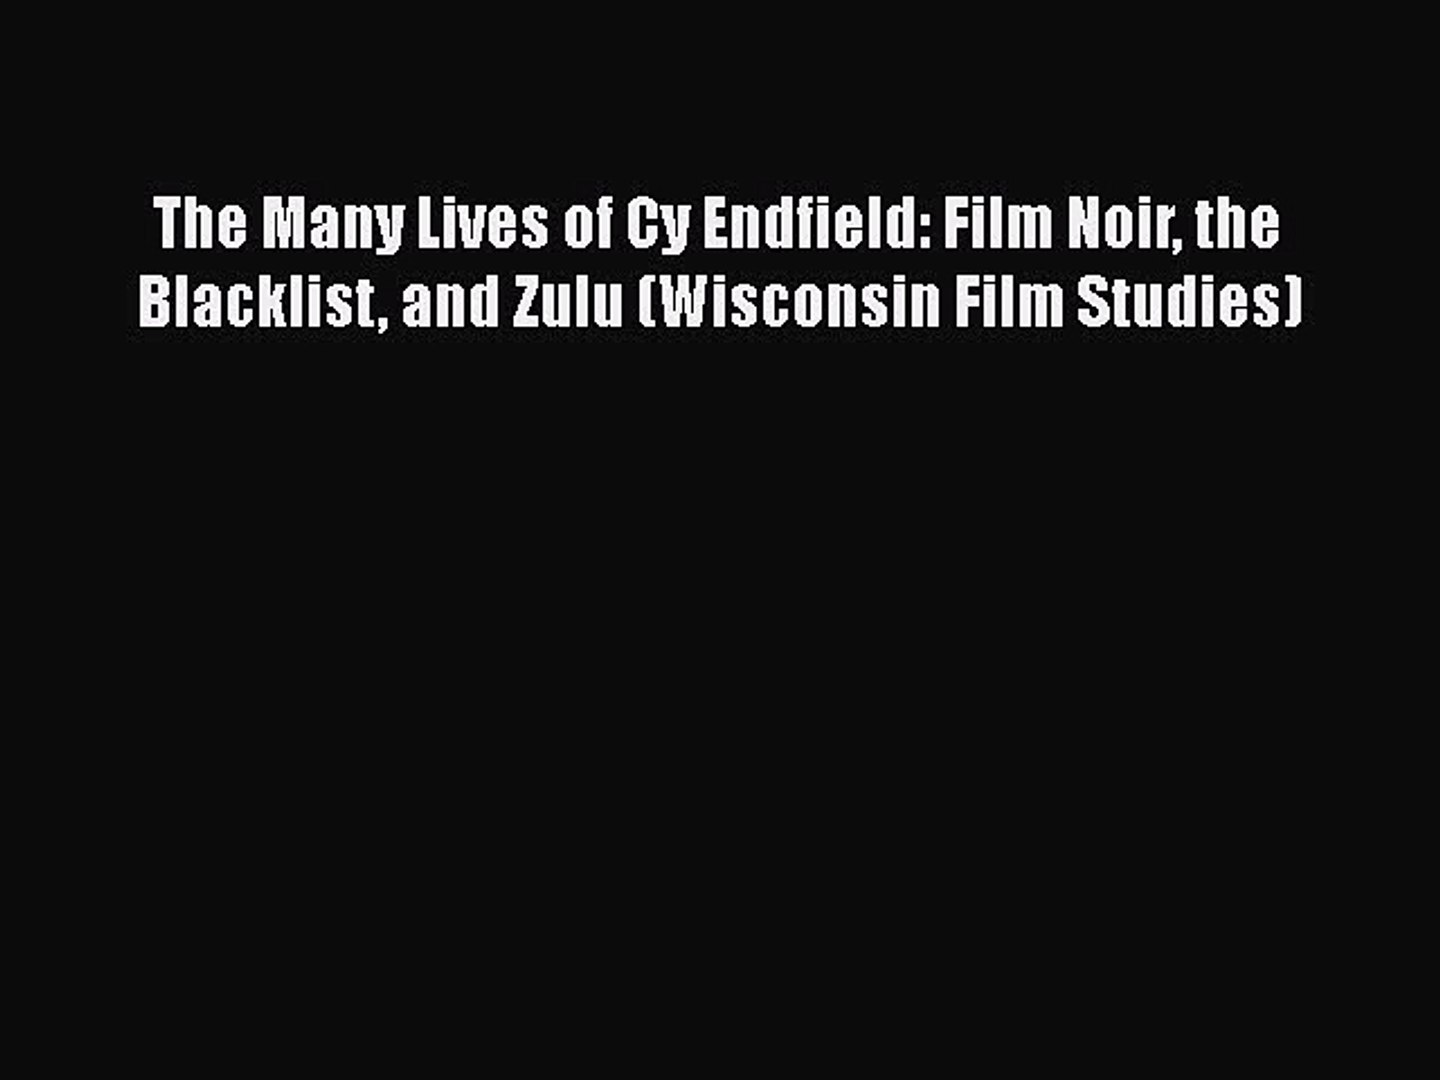 Download The Many Lives of Cy Endfield: Film Noir the Blacklist and Zulu (Wisconsin Film Studies)